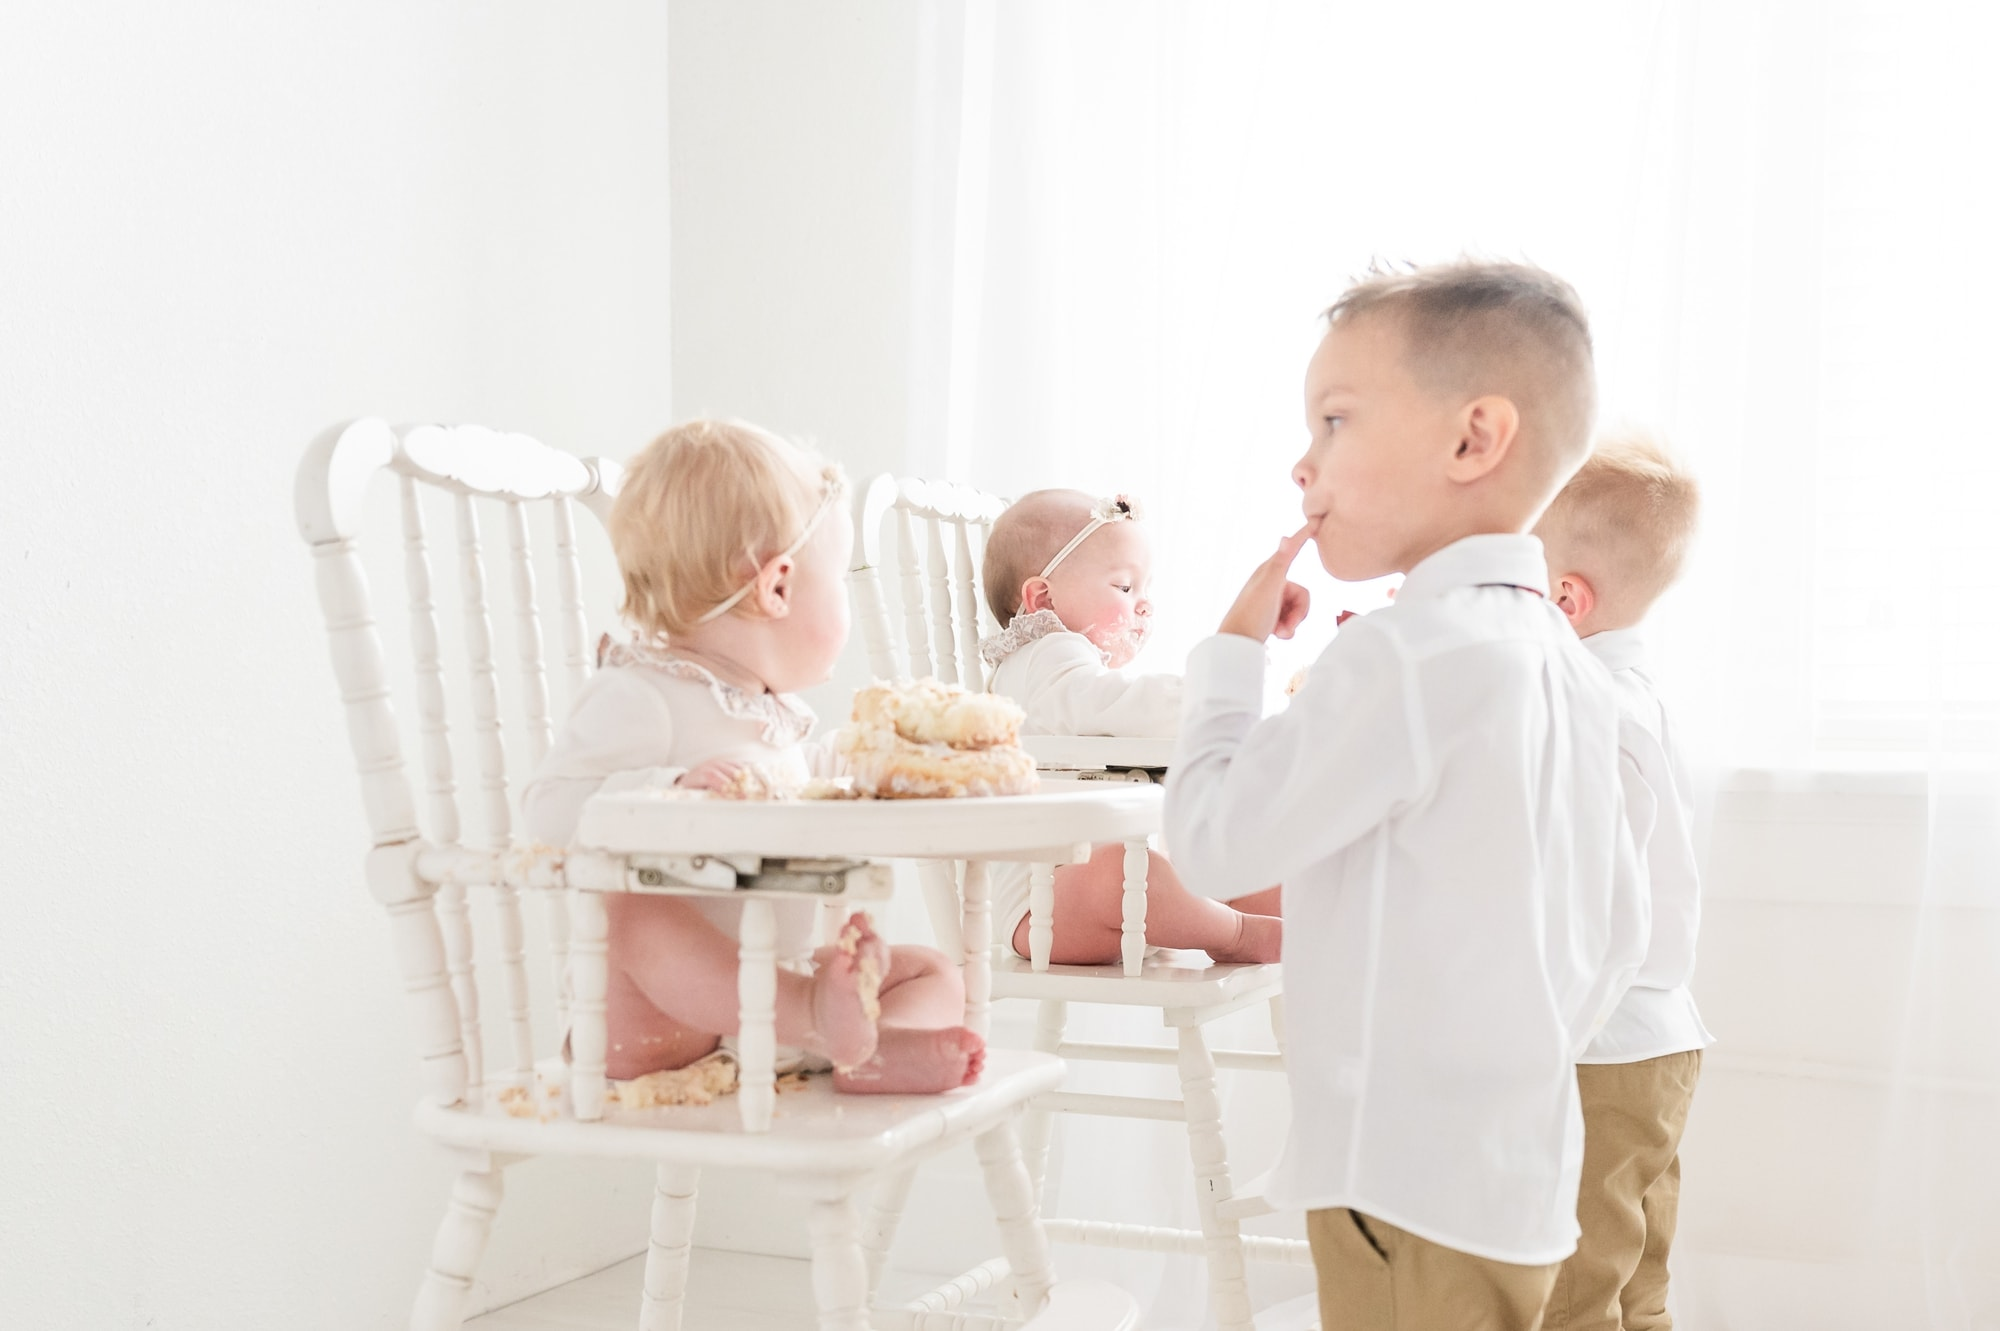 Big brothers tasting baby sisters' cake during first birthday session. Photo by Aimee Hamilton Photography.